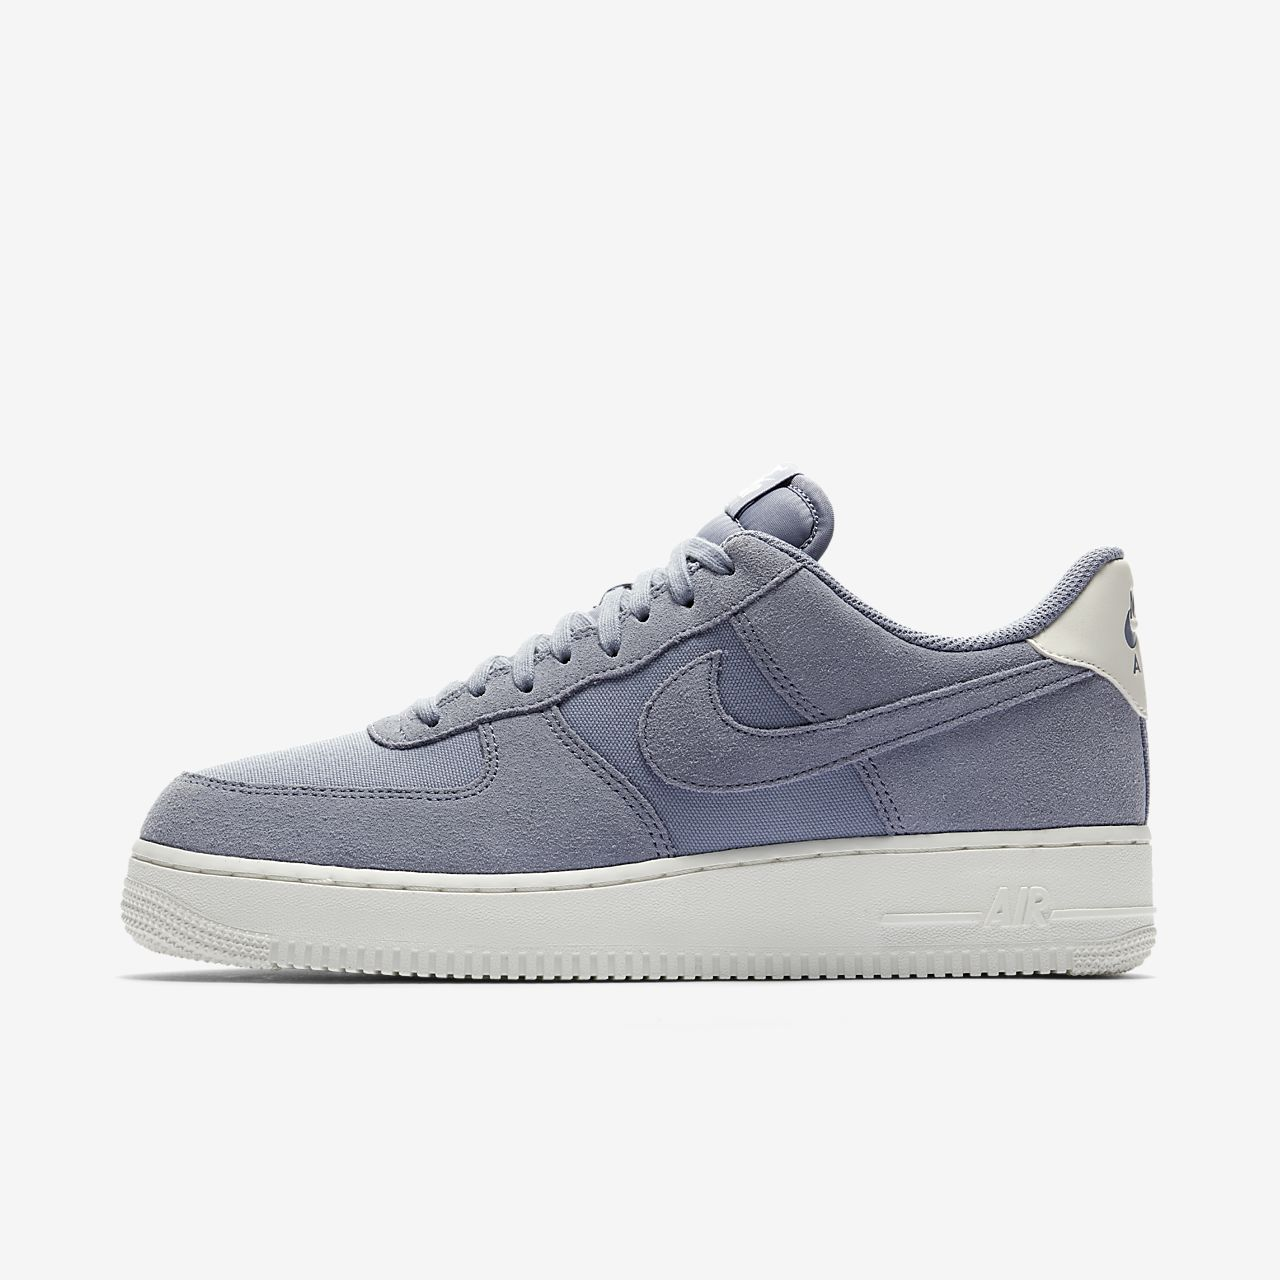 newest collection a5f14 431af ... Nike Air Force 1 07 Suede-sko til mænd